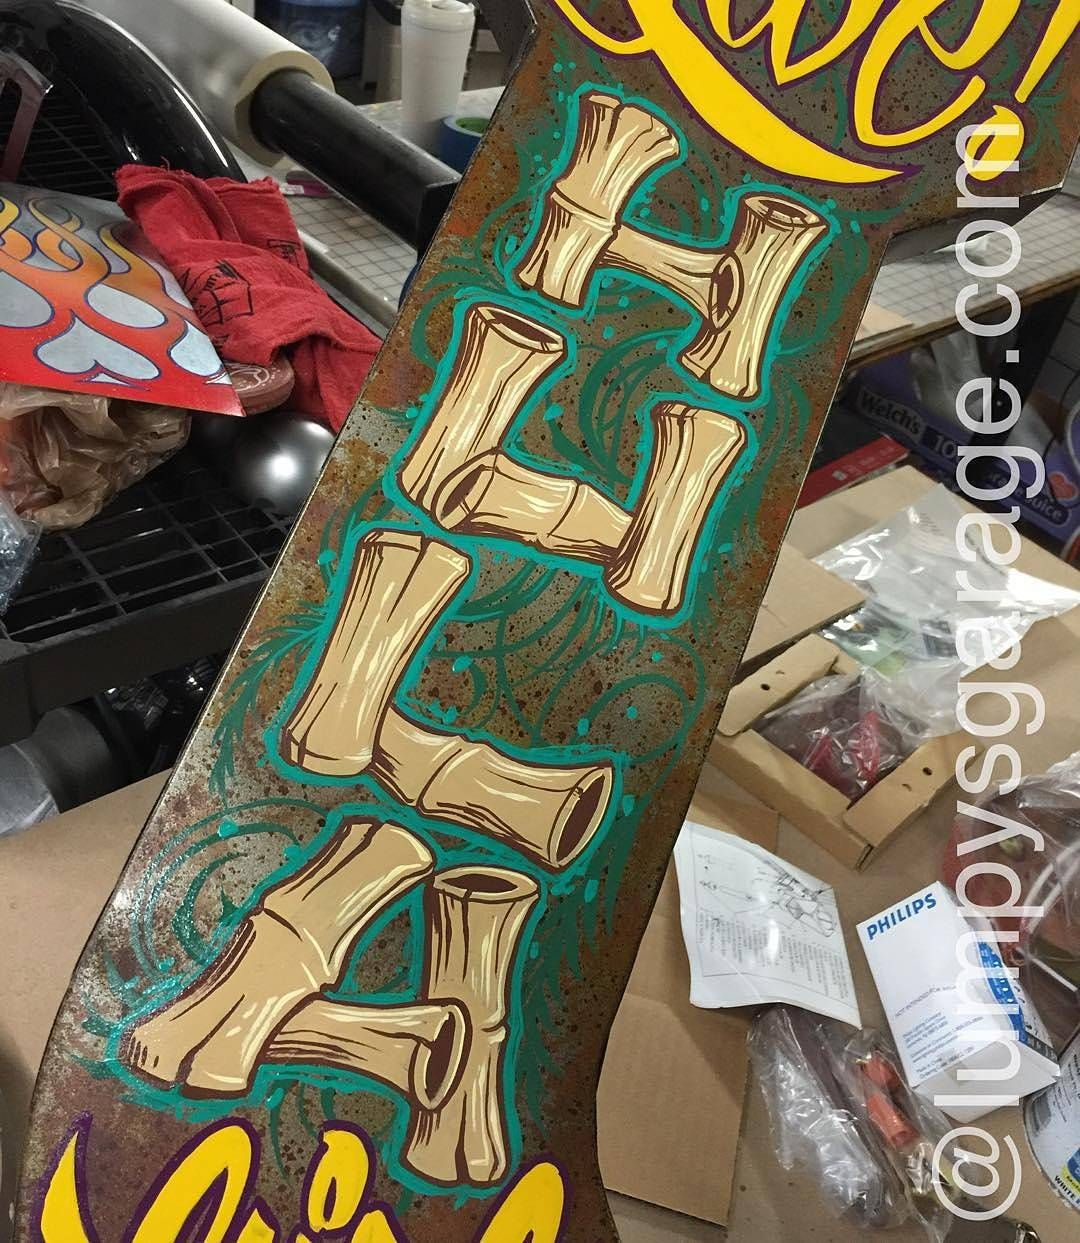 Amazing hand painted bamboo lettering. Type by @lumpysgarage | #typegang if you would like to be featured | typegang.com | typegang.com #typegang #typography